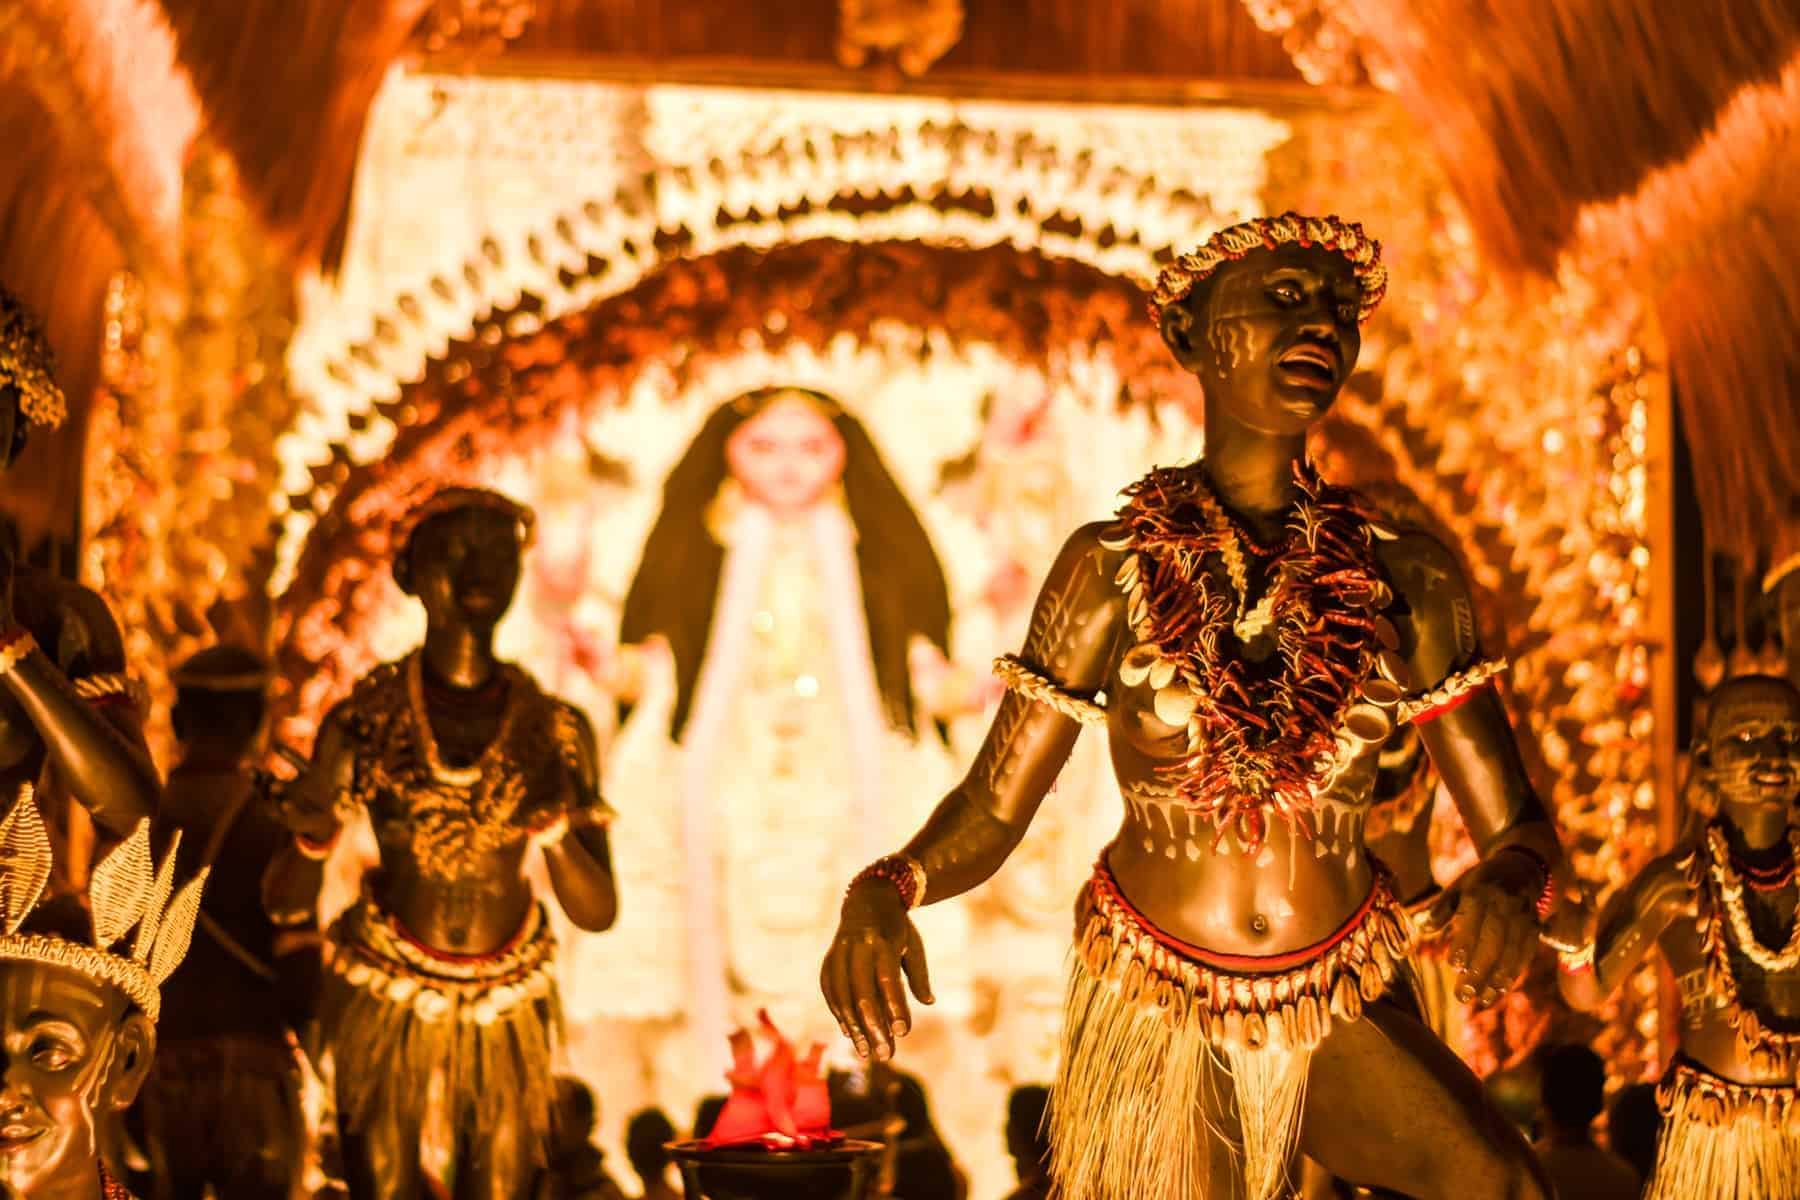 KOLKATA , INDIA SEPTEMBER 26, 2017 - Decorated art and craft sculptures of Traditional tribal Santal or Santhal ethnic group dancers wear traditional clothing in a famous Durga Puja pandal.